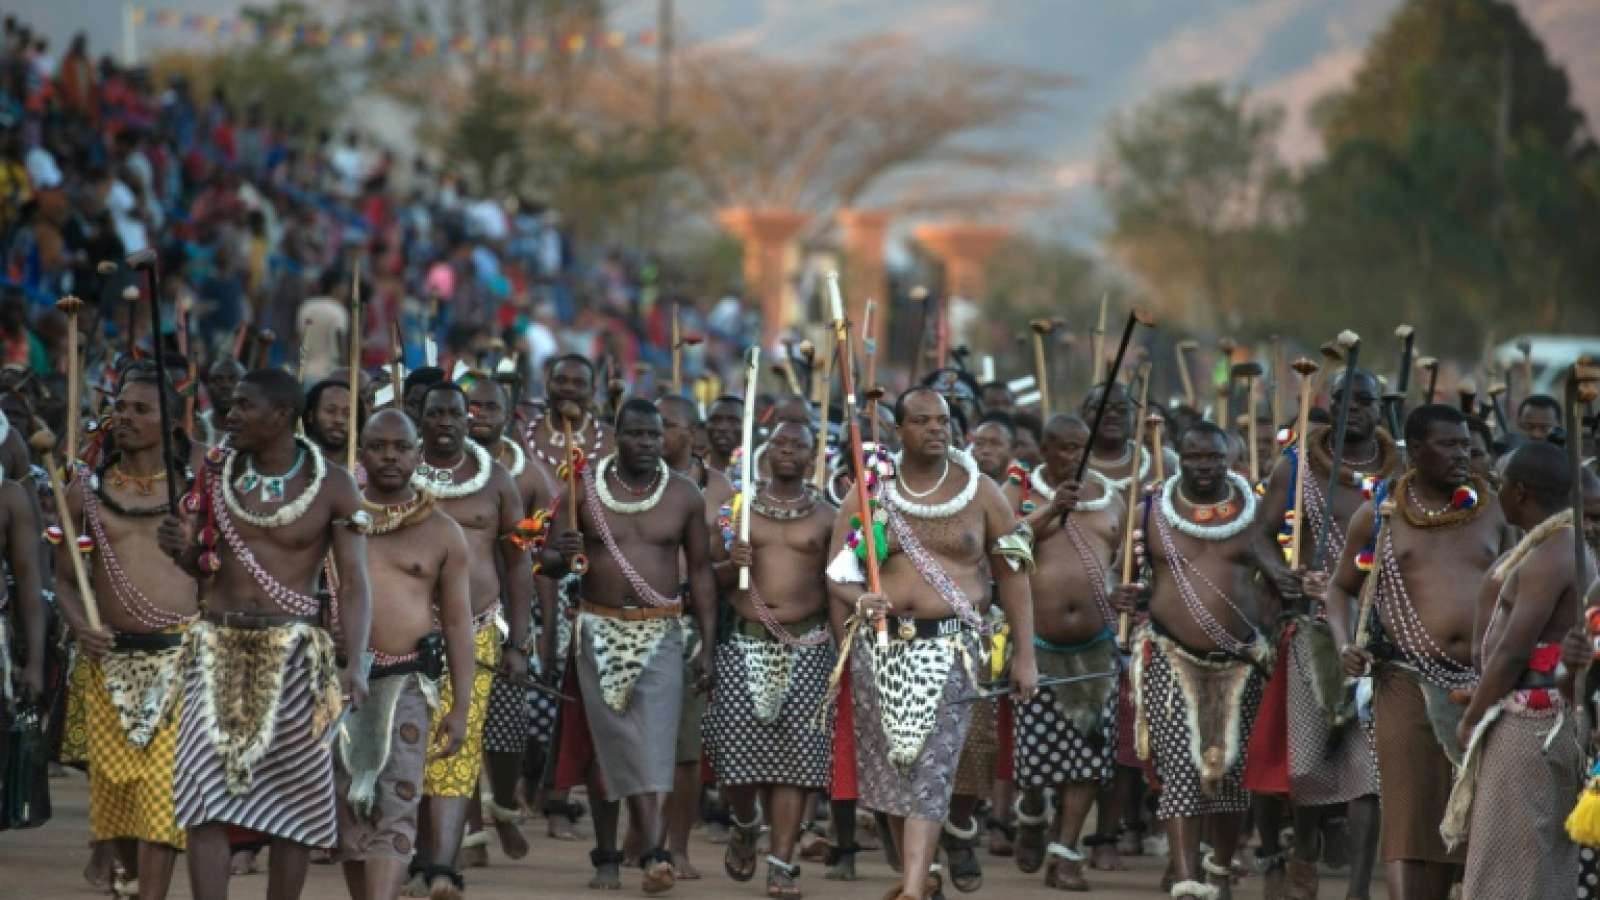 mswati-iii-king-of-swaziland-changes-countrys-name-to-eswatini